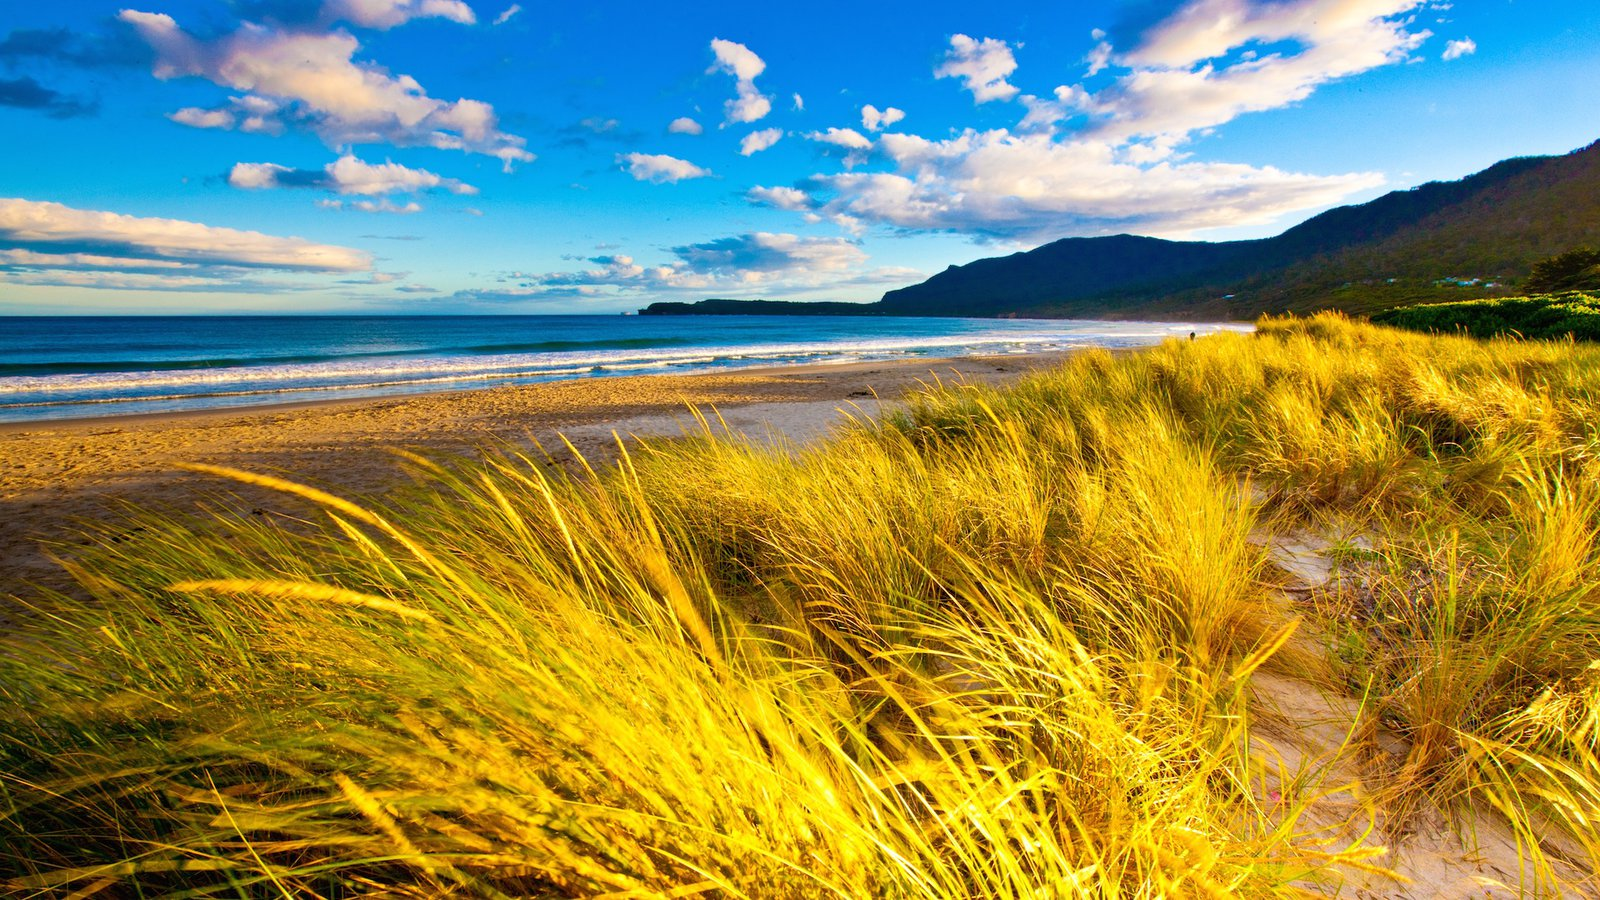 Tasman Peninsula which includes general coastal views, tranquil scenes and landscape views